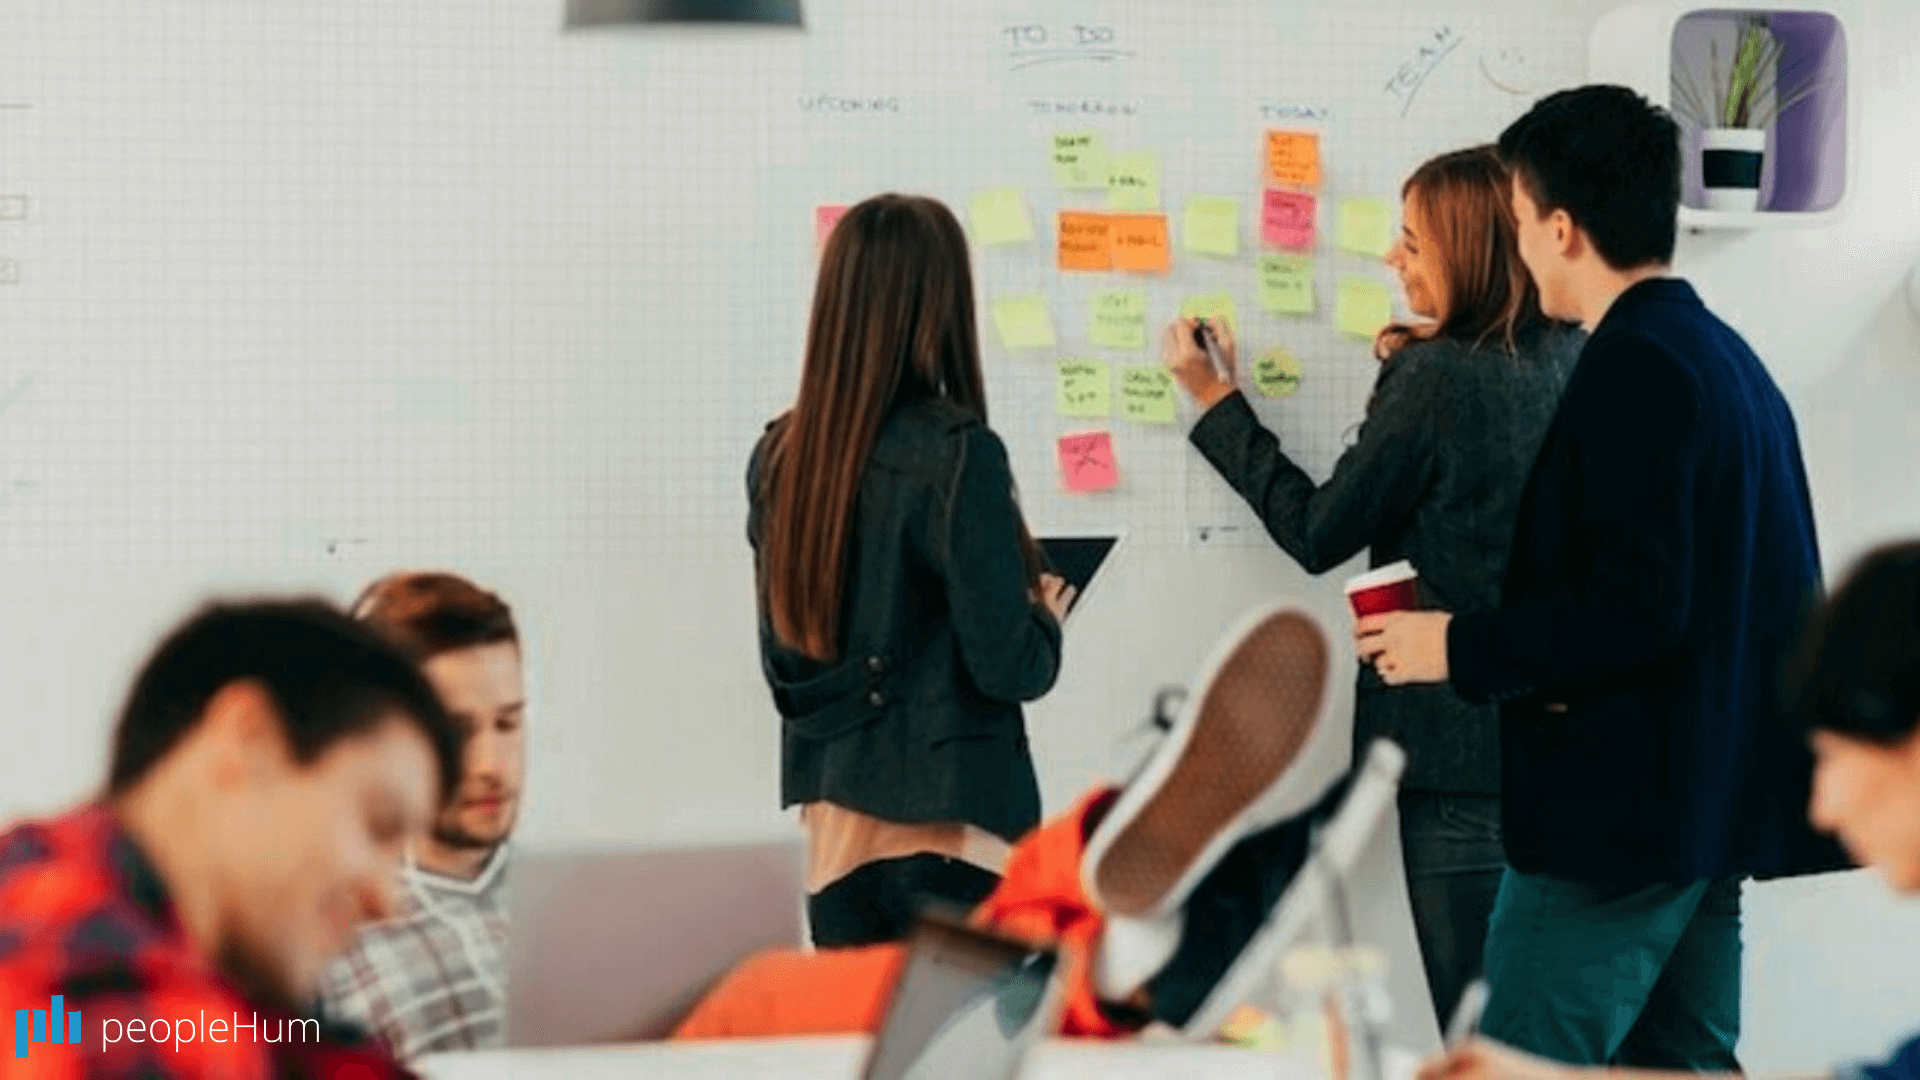 The company culture at peopleHum